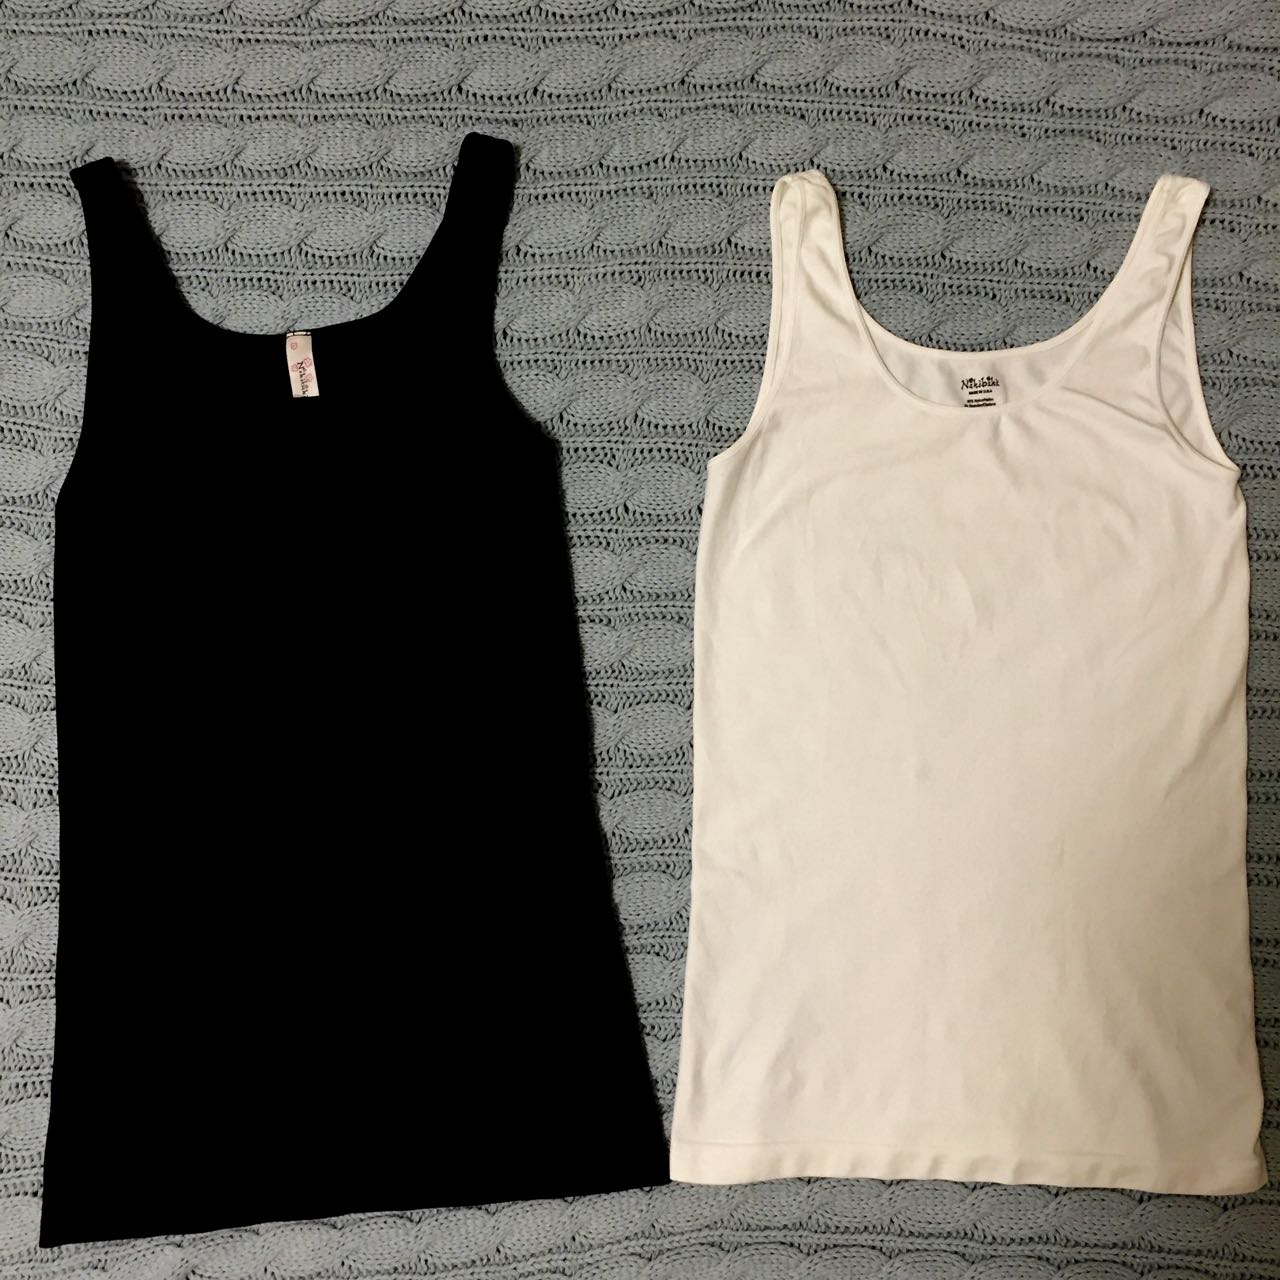 Talltique tank tops for tall women